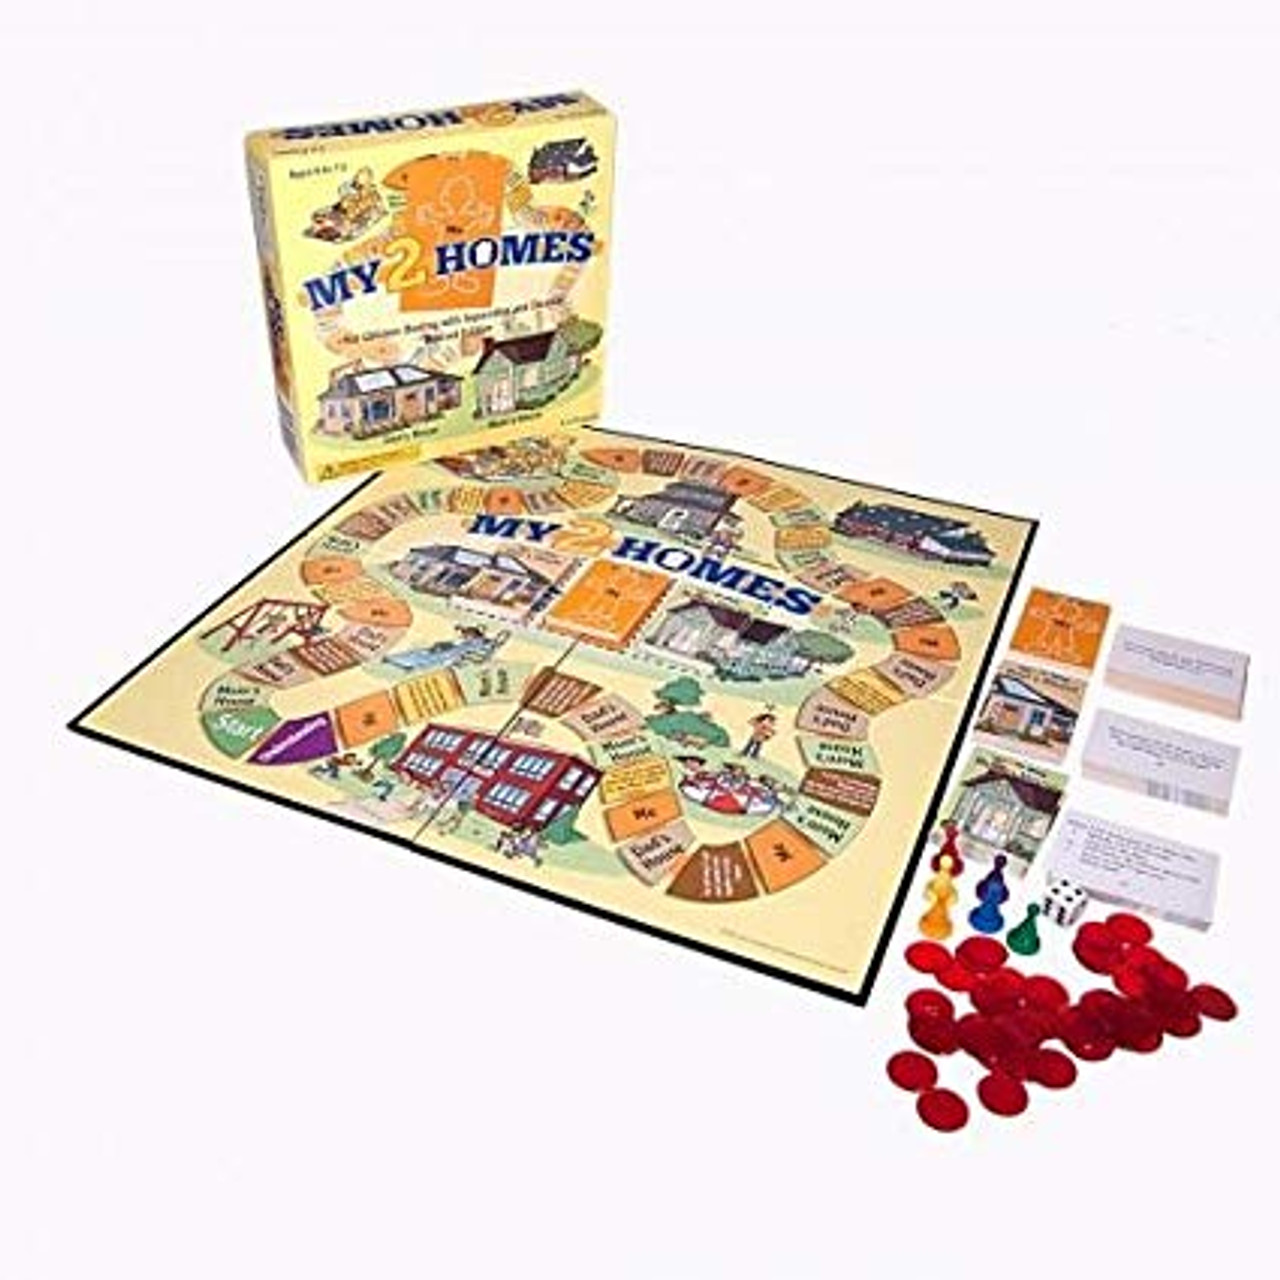 My 2 Homes Board Game